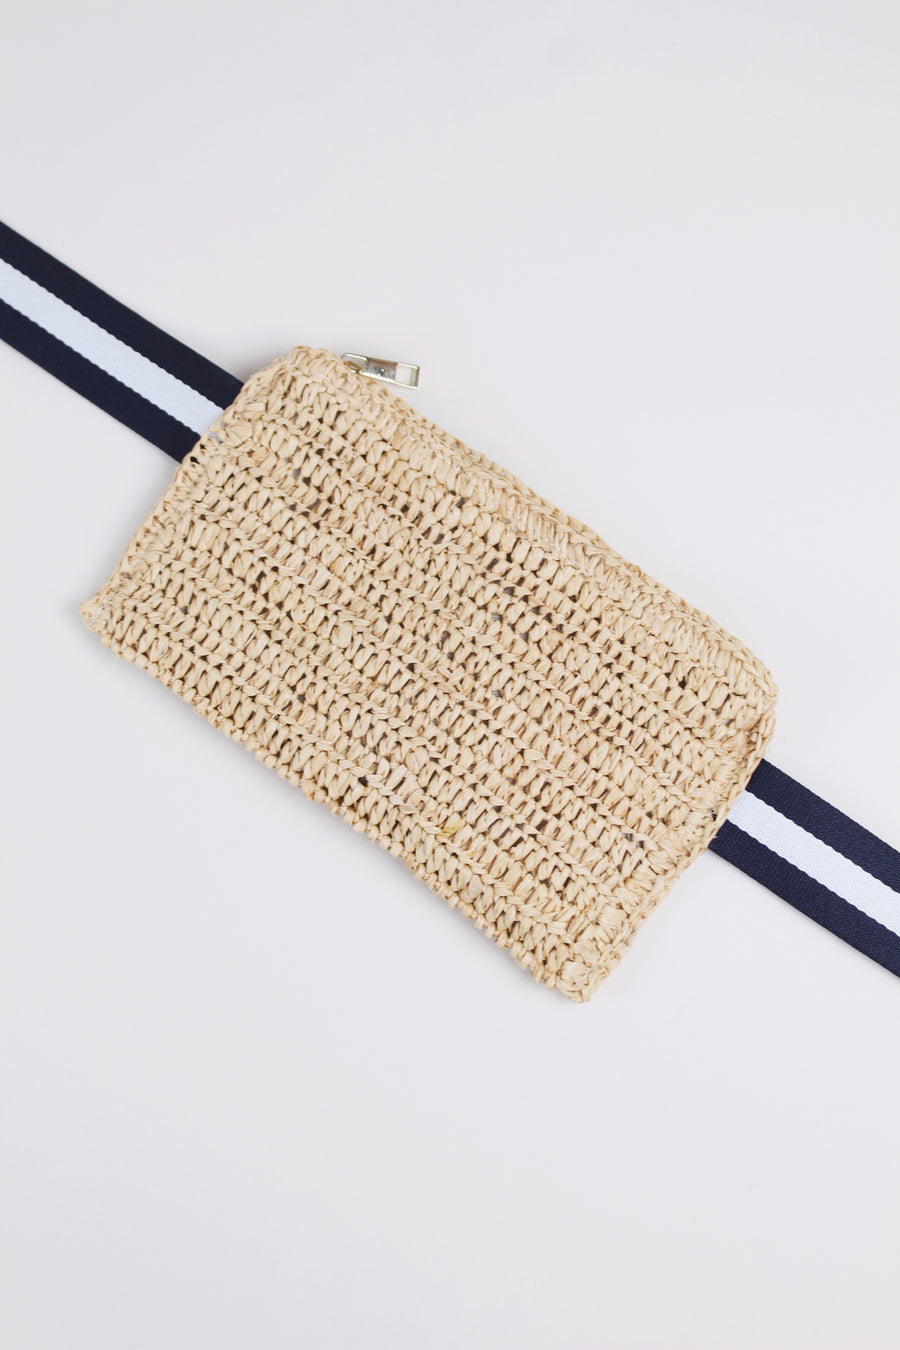 Natural Belt Bag by HatAttack - The Beach Bride by Chic Parisien, a destination for beach weddings, bachelorettes and honeymoons